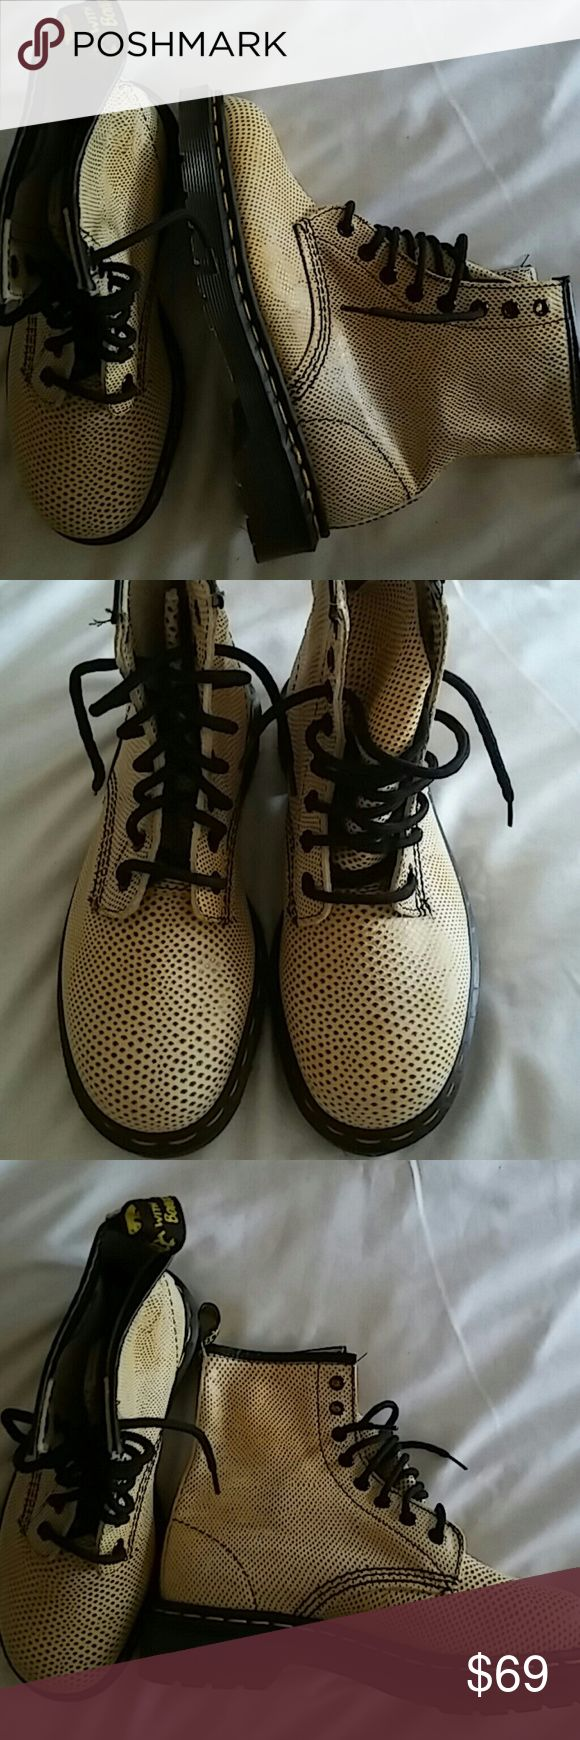 Dr Martin's Boots Size 6/ UK 4 Never Worn Shoes Lace Up Boots